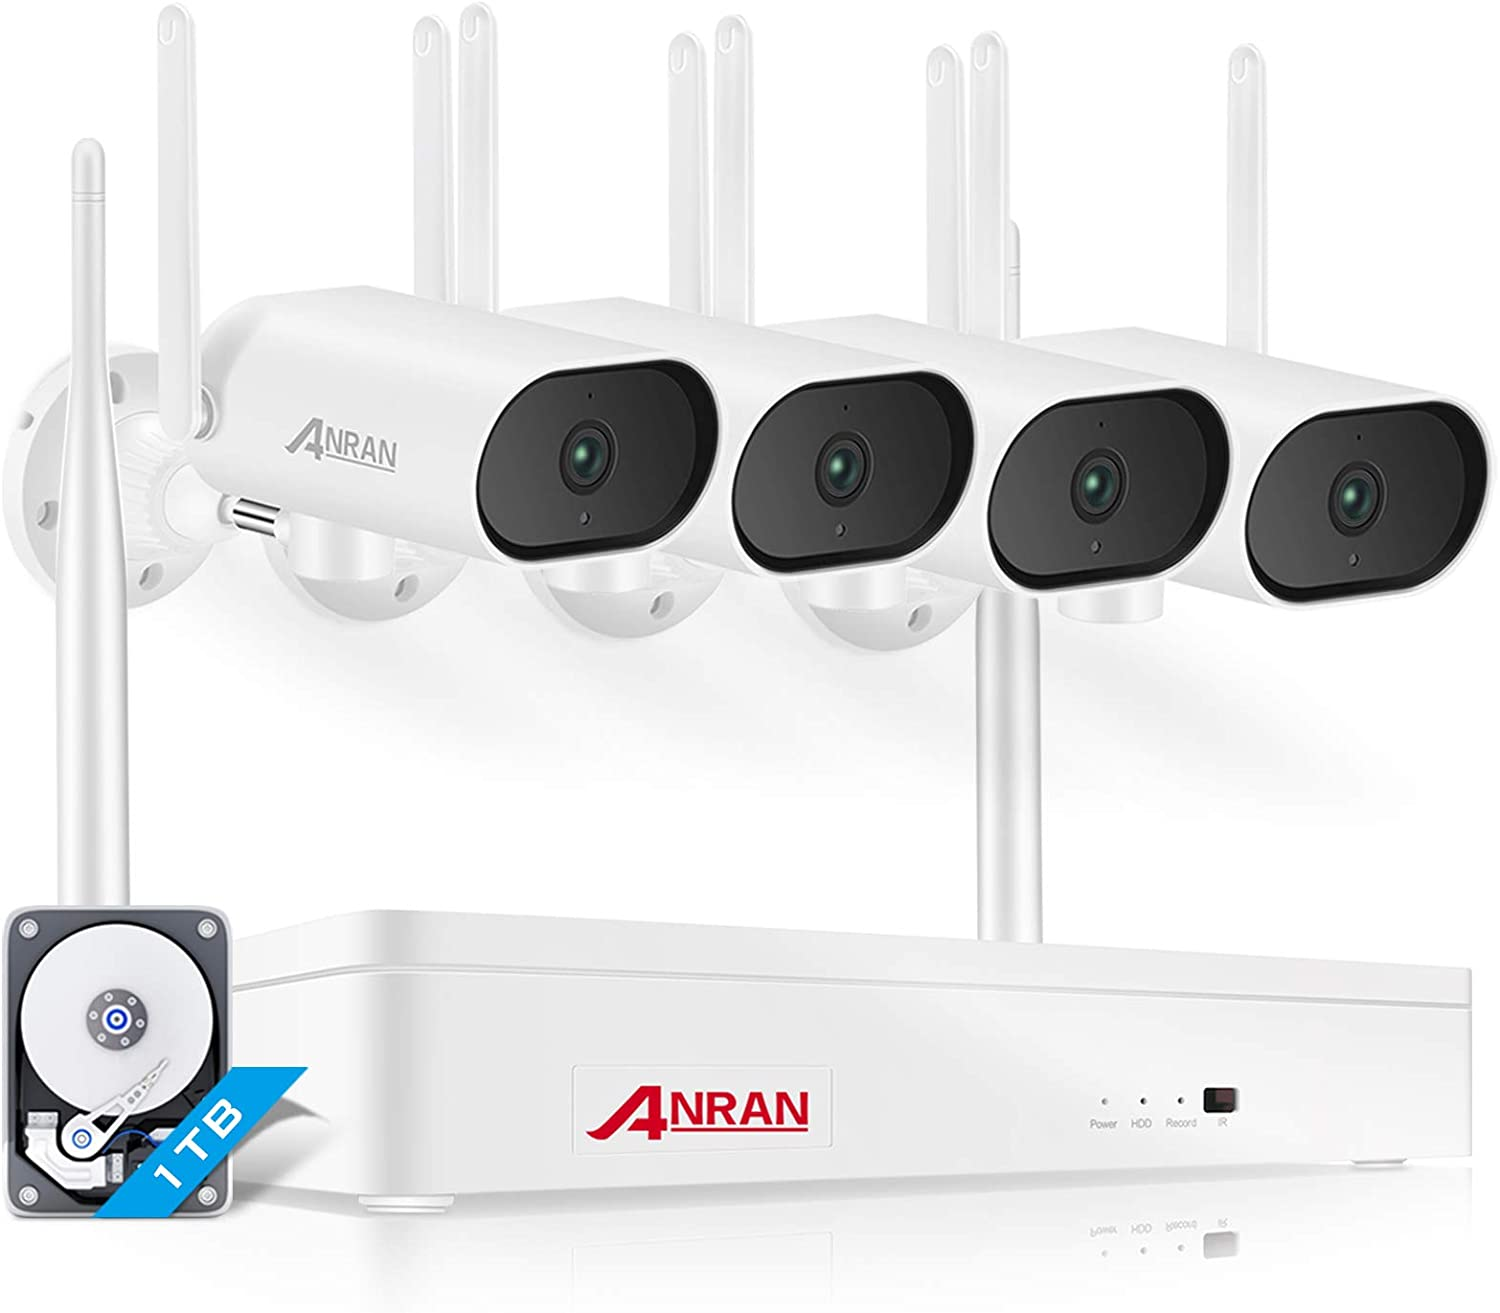 ANRAN 3MP Wireless Security Camera System with 1TB Hard Drive, 8CH Expandable NVR 4Pcs 180° Pan Outdoor WiFi Surveillance Camera with One-Way Audio, Night Vision, Motion Alert, Plug&Play, 7/24 Record